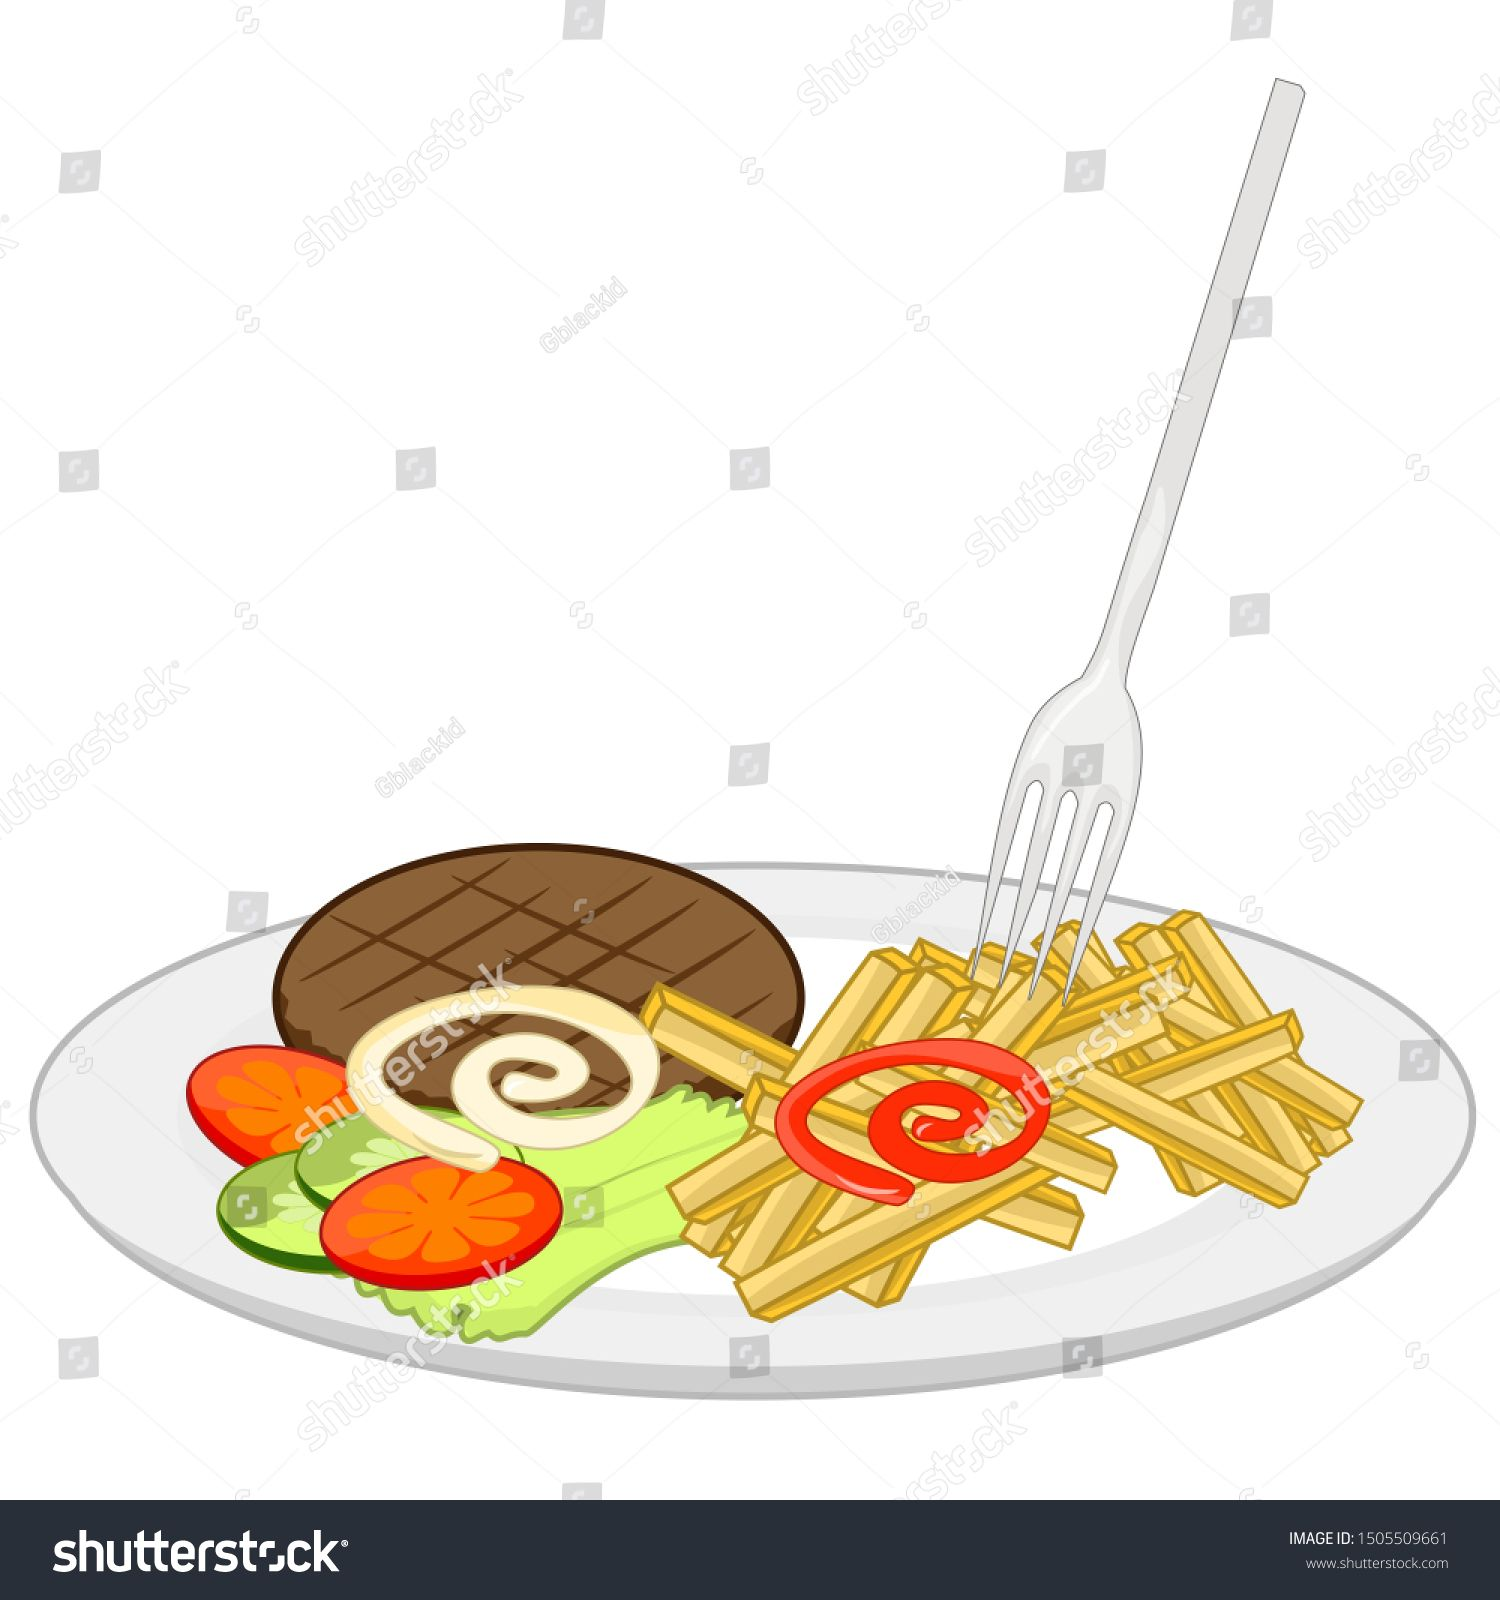 Simple illustration of a food and drink #Sponsored , #AFF, #illustration#Simple#drink#food